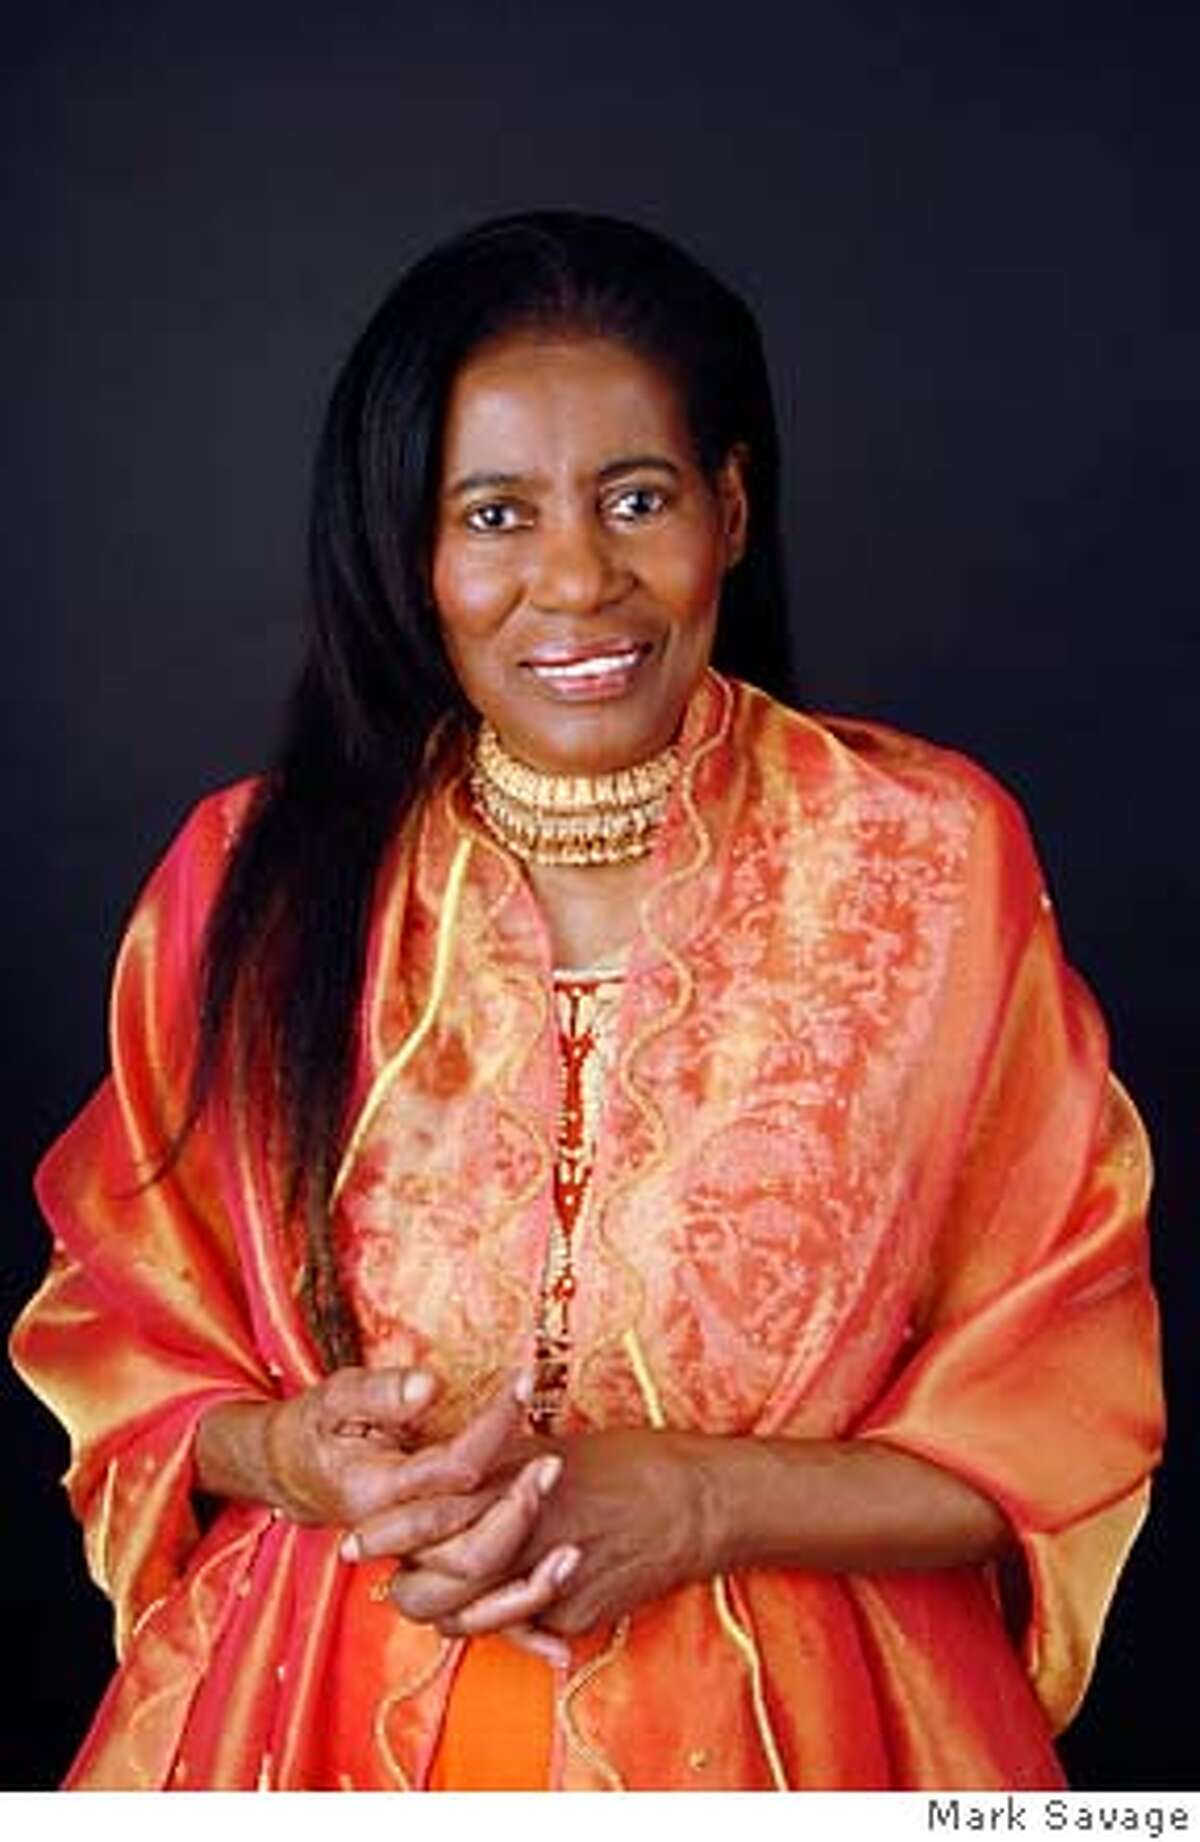 Alice Coltrane, 69, jazz pianist, harpist and the widow of John Coltrane, photographed October 12, 2006 at the John Coltrane Foundation in Woodland Hills, CA Copyright 2006 Mark Savage photo: Mark Savage www.MarkSavage.com marksavagephoto@aol.com 310-367-4706